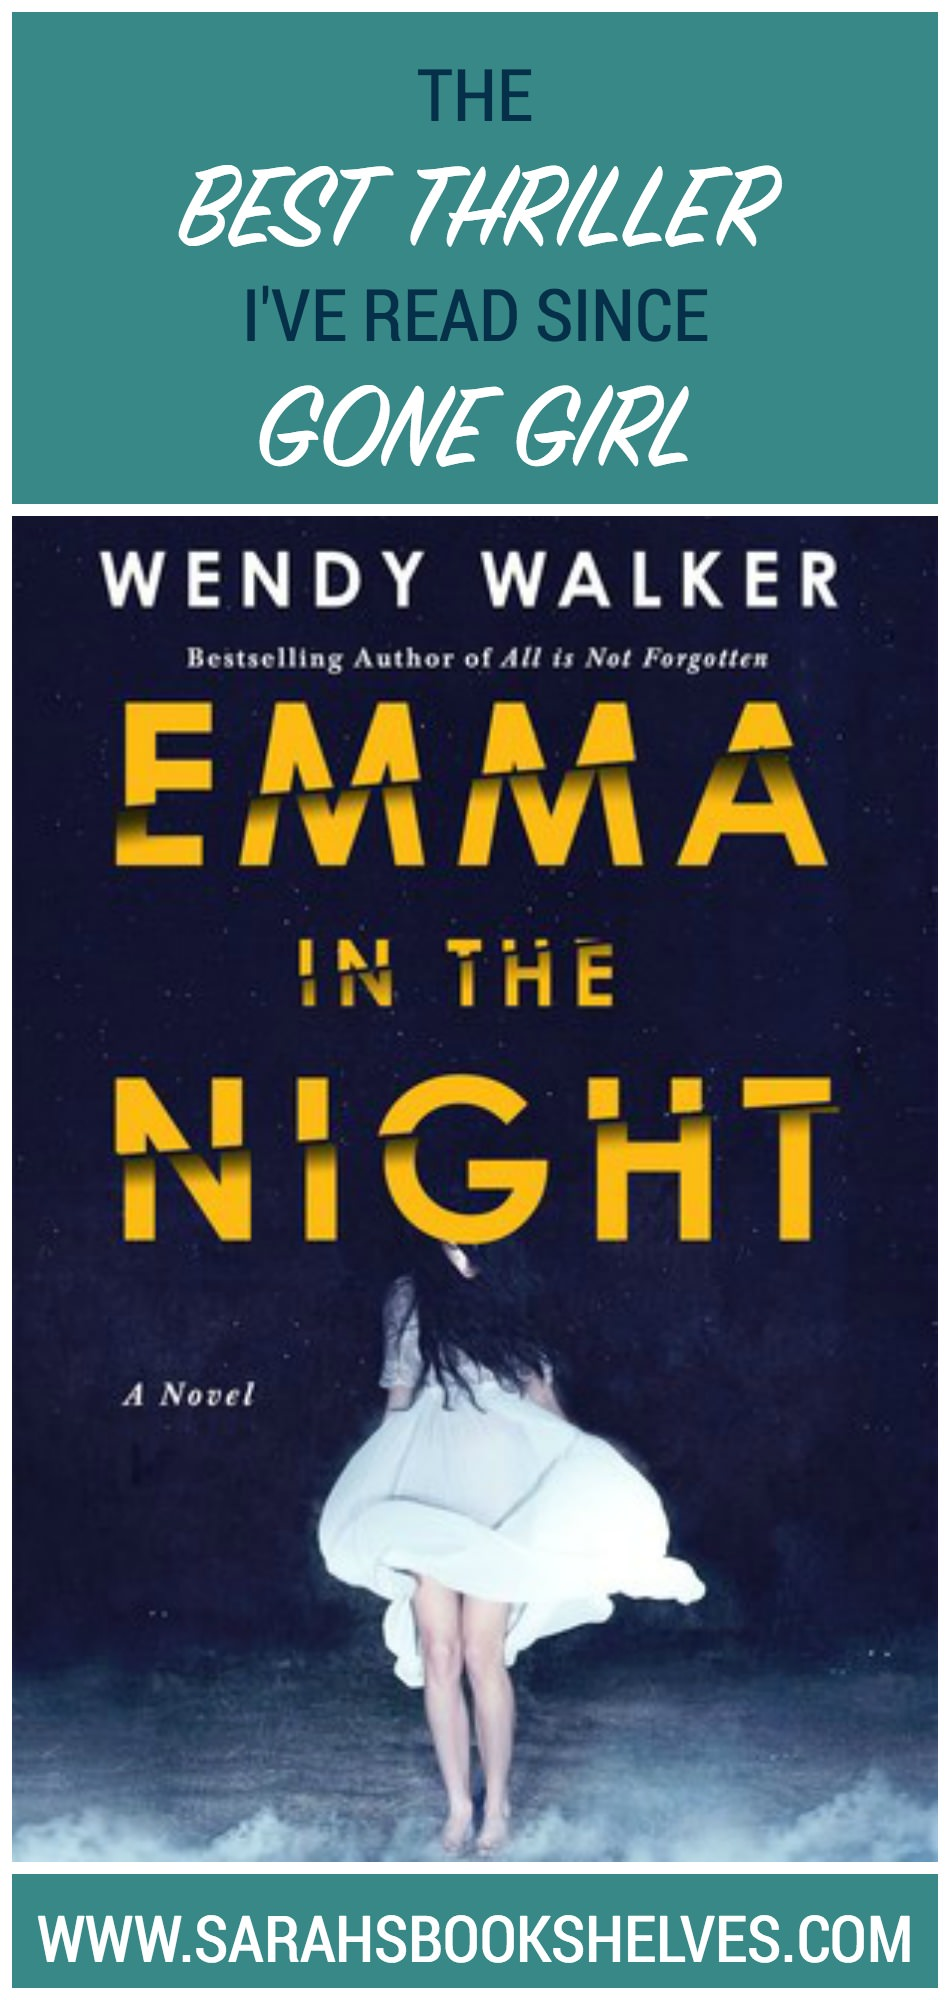 Emma in the Night by Wendy Walker is the best psychological thriller I've read since Gone Girl...its ending is surprising, yet still fits with the story!